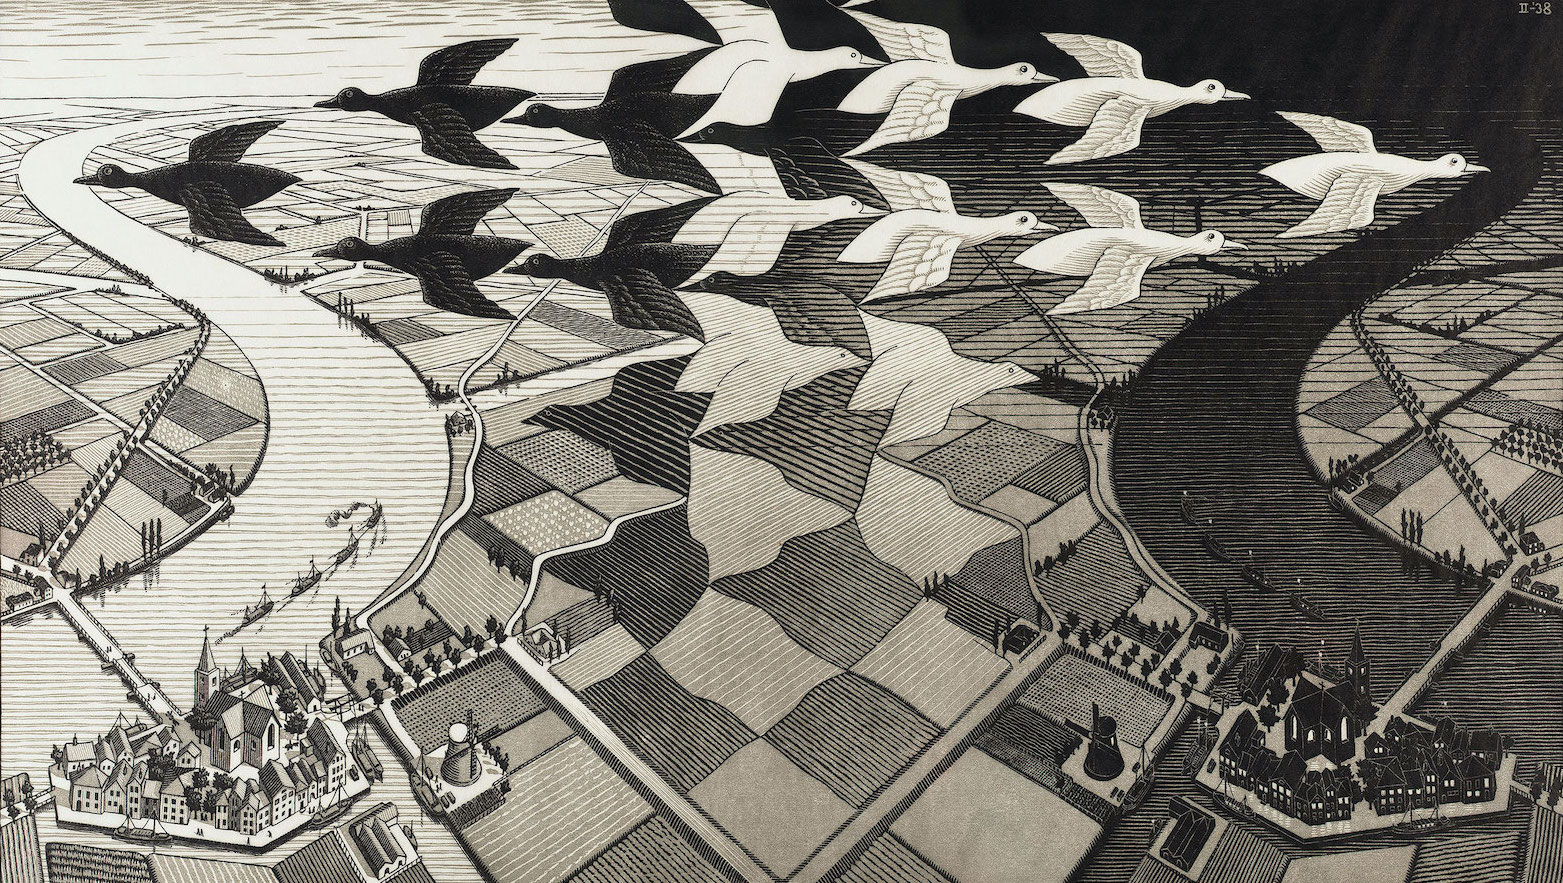 Day and Night, 1938, by M.C. Escher